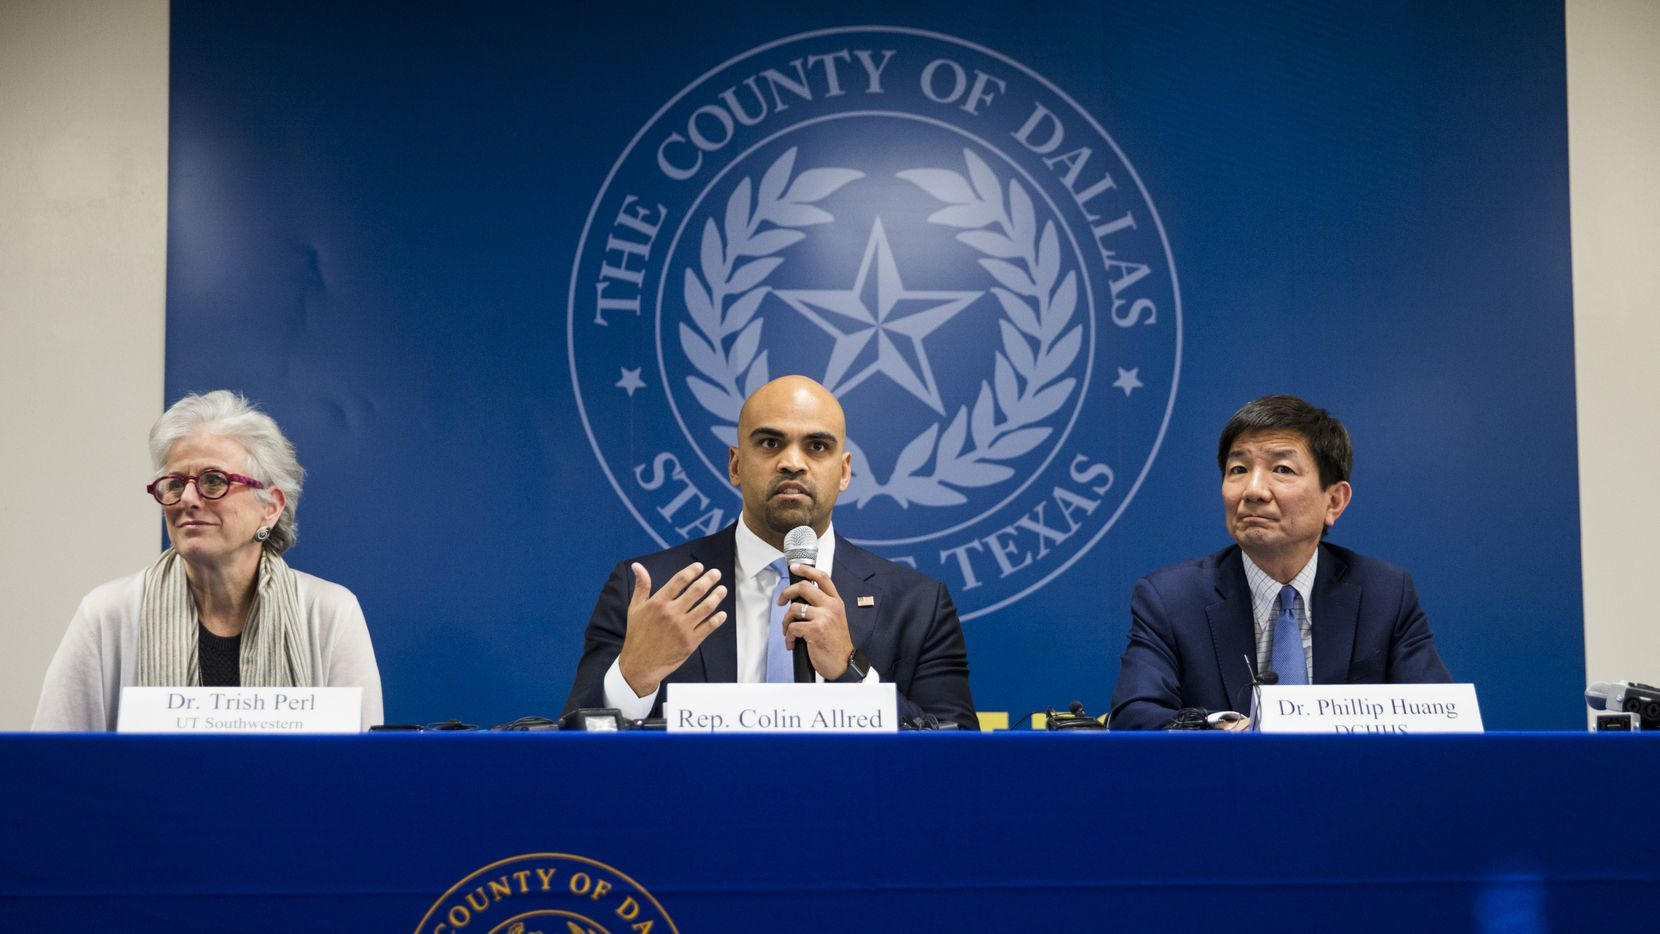 Congressman Colin Allred (TX-32, center) joins Dr. Trish M. Perl (left), the Chief of the Division of Infectious Diseases at UT Southwestern Medical Center, and Dr. Philip Huang, the Director of Dallas County Health and Human Services, discuss how Dallas County is handling Corona Virus on Friday, March 6, 2020 at the Dallas County Health and Human Services Building in Dallas. The talk was moderated by Texas State Senator Nathan Johnson (SD-16).